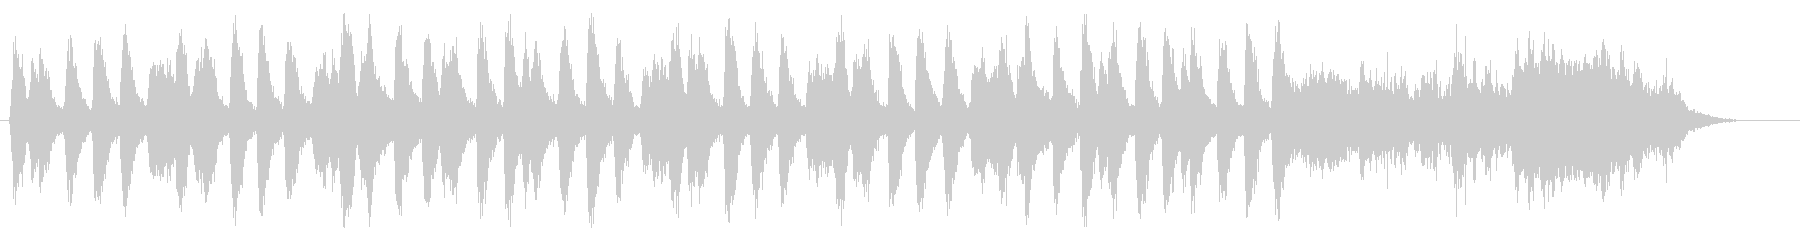 Birthdays celebrated by the little old men's unreproduced waveform